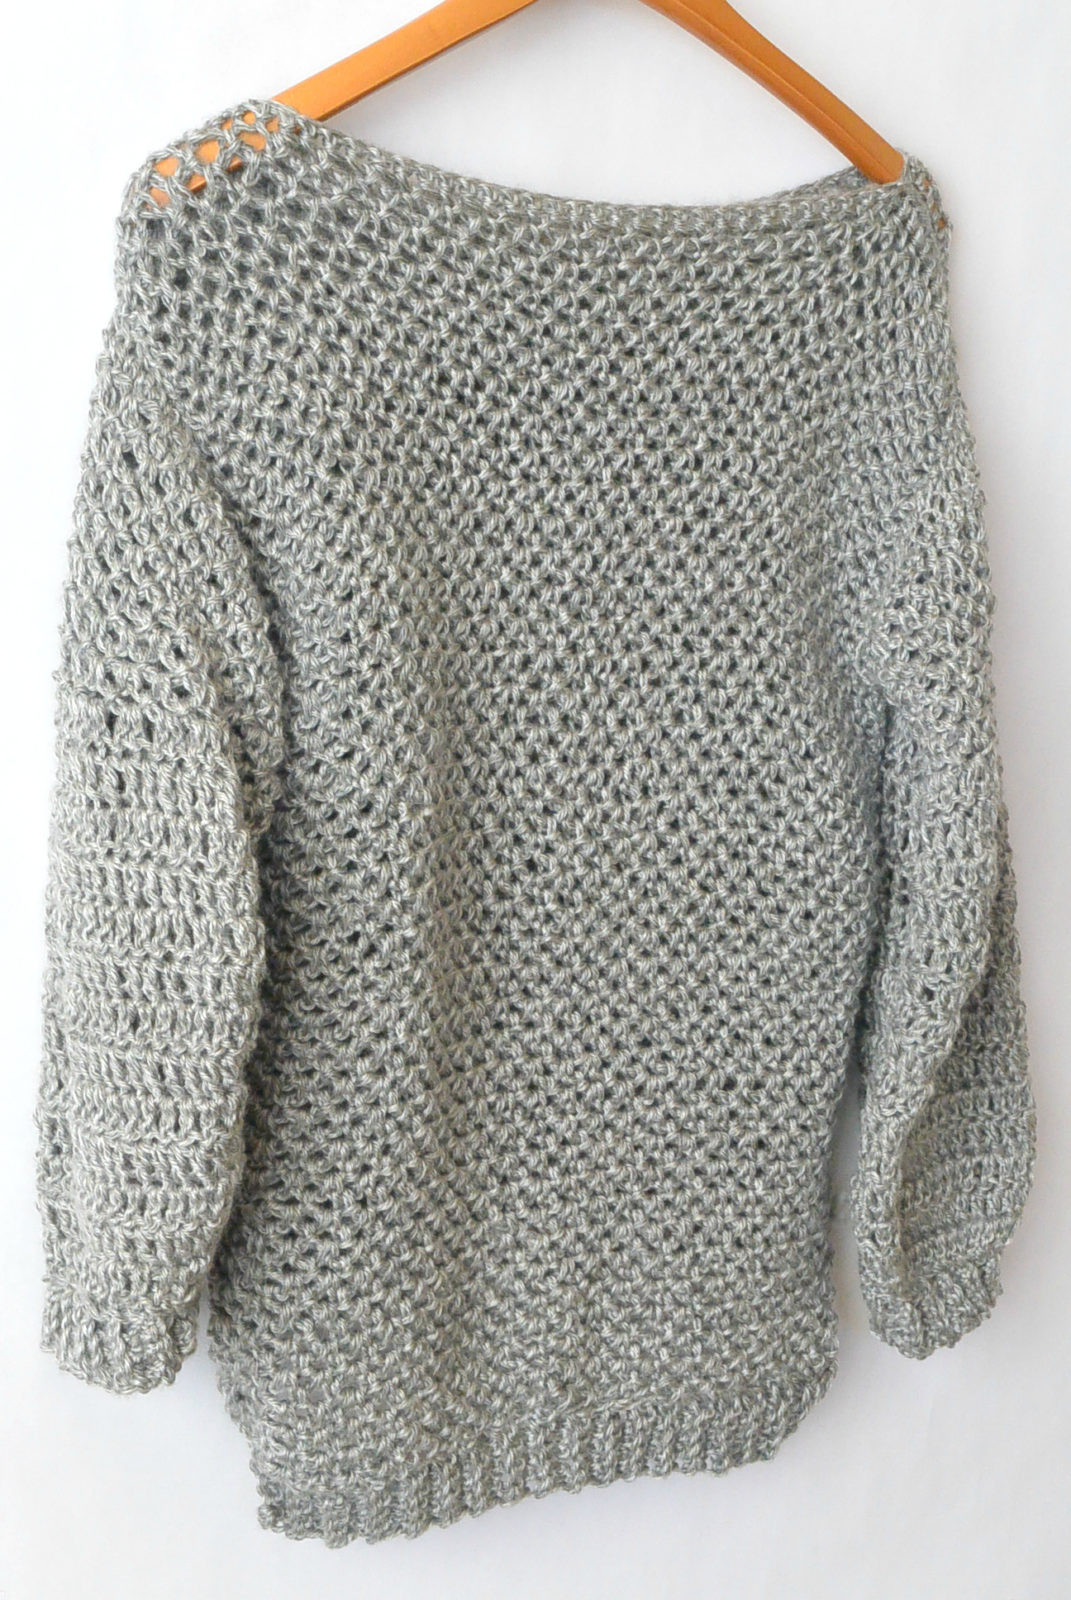 Crochet Cardigan Sweater Inspirational How to Make An Easy Crocheted Sweater Knit Like – Mama Of Luxury 41 Ideas Crochet Cardigan Sweater